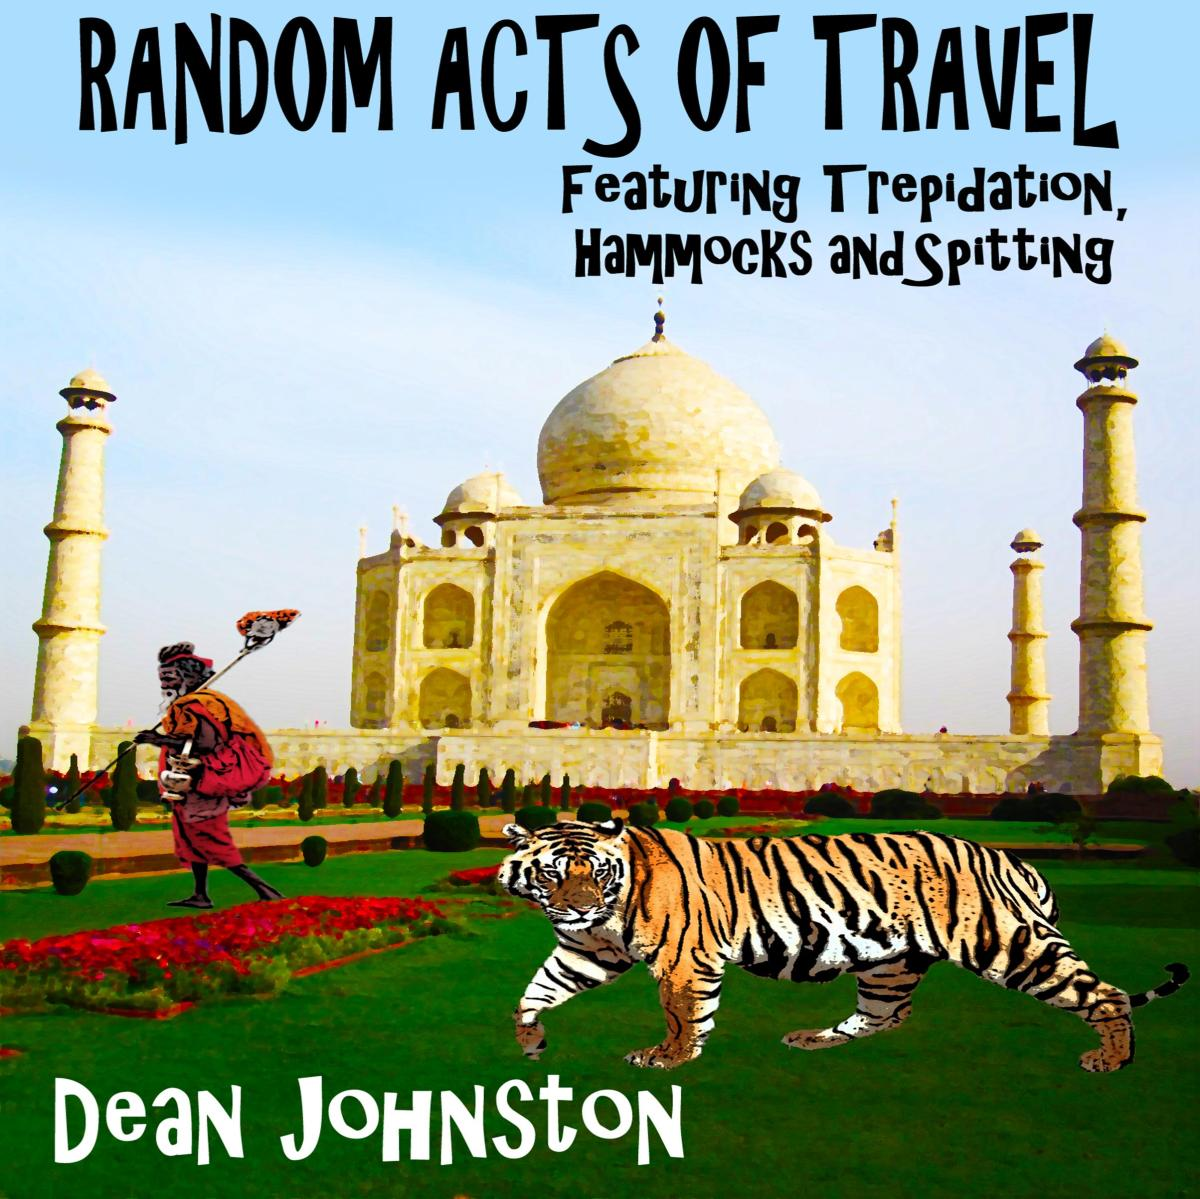 Random Acts of Travel